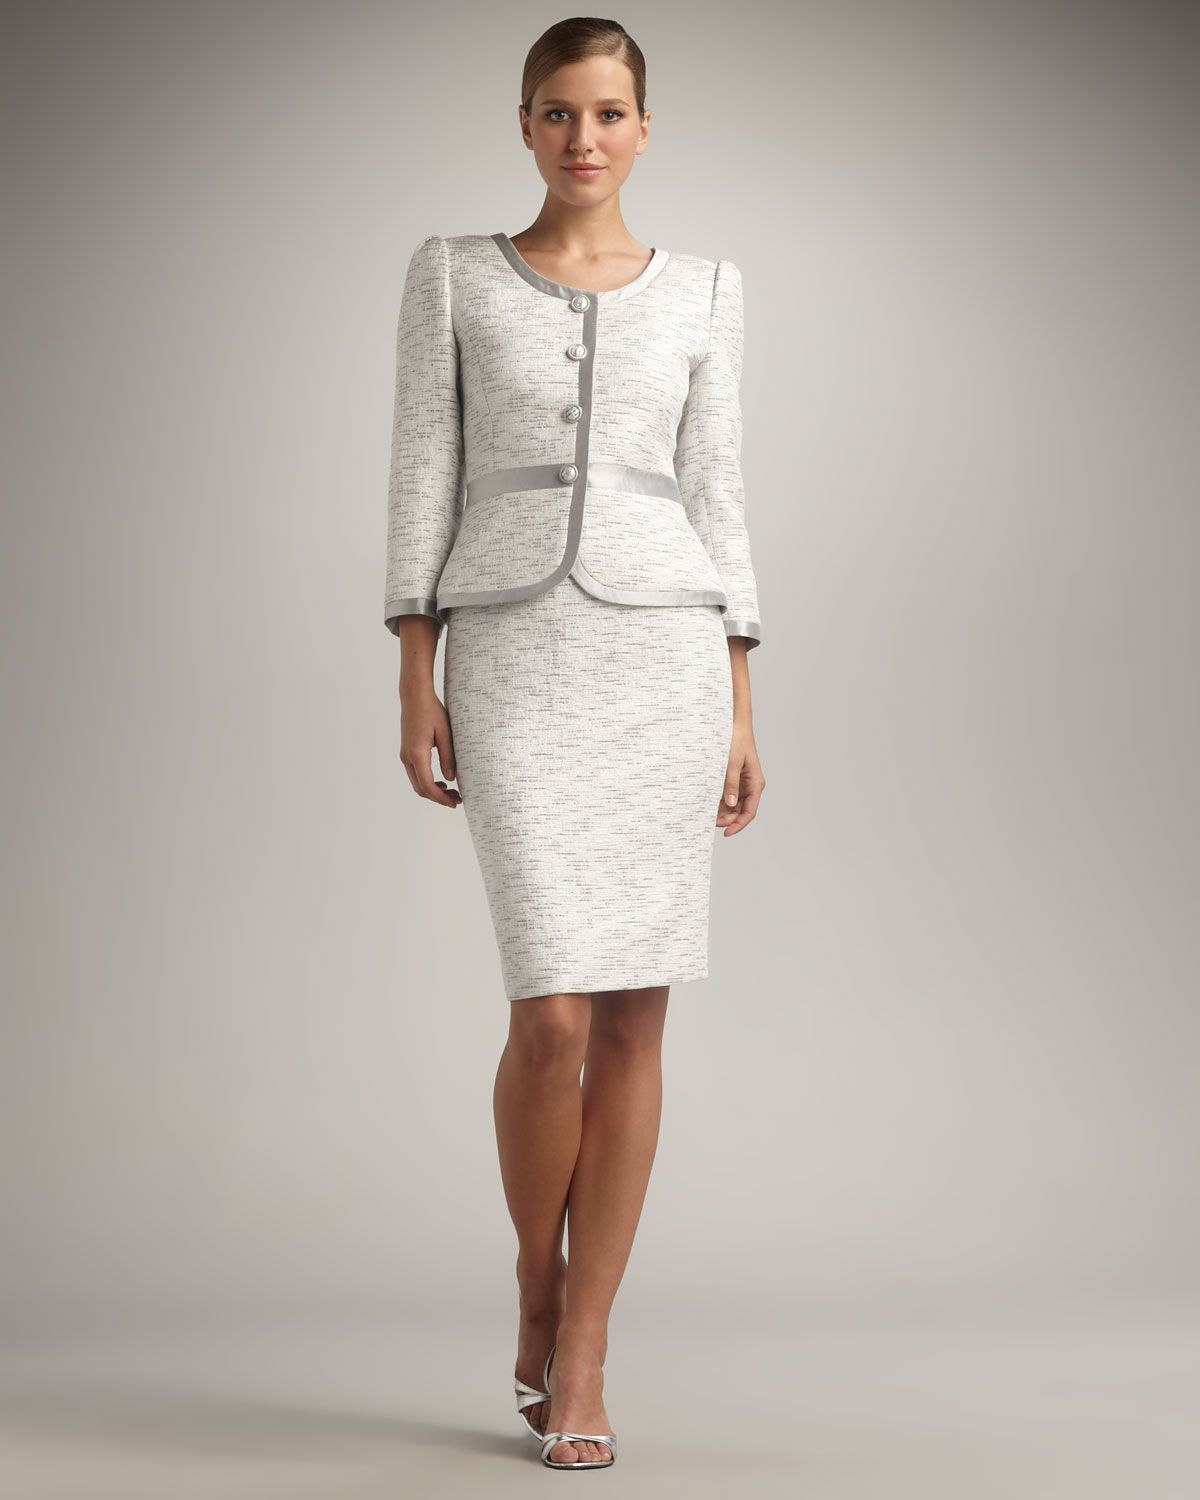 Buy New Women's White Skirt Suit Suits & Separates at Macy's. Shop the Latest Designer & Business Suits for Women Online at tiodegwiege.cf FREE SHIPPING AVAILABLE! Macy's Presents: The Edit- A curated mix of fashion and inspiration Check It Out. Free Shipping with $49 purchase + Free Store Pickup. Contiguous US.